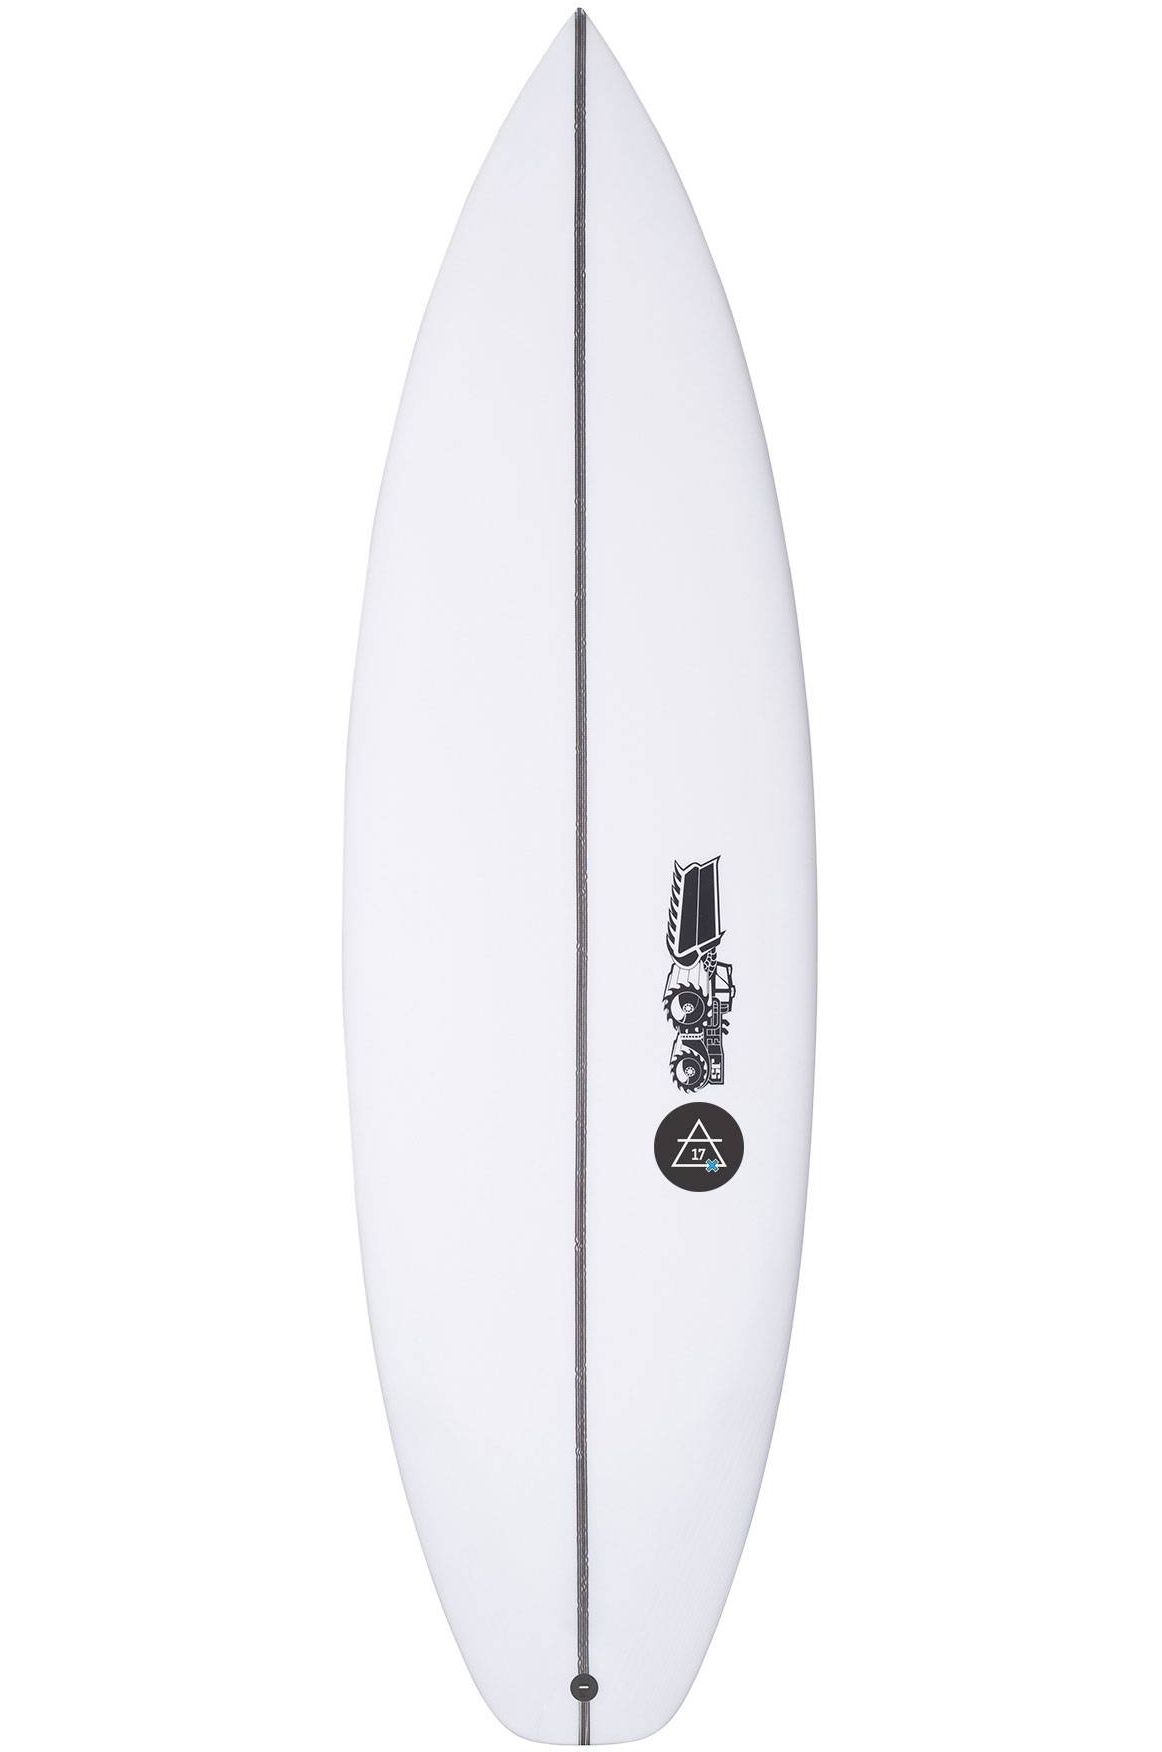 Prancha Surf JS AIR 17- JULIAN WILSON YOUTH Squash Tail - White FCS II 5ft4